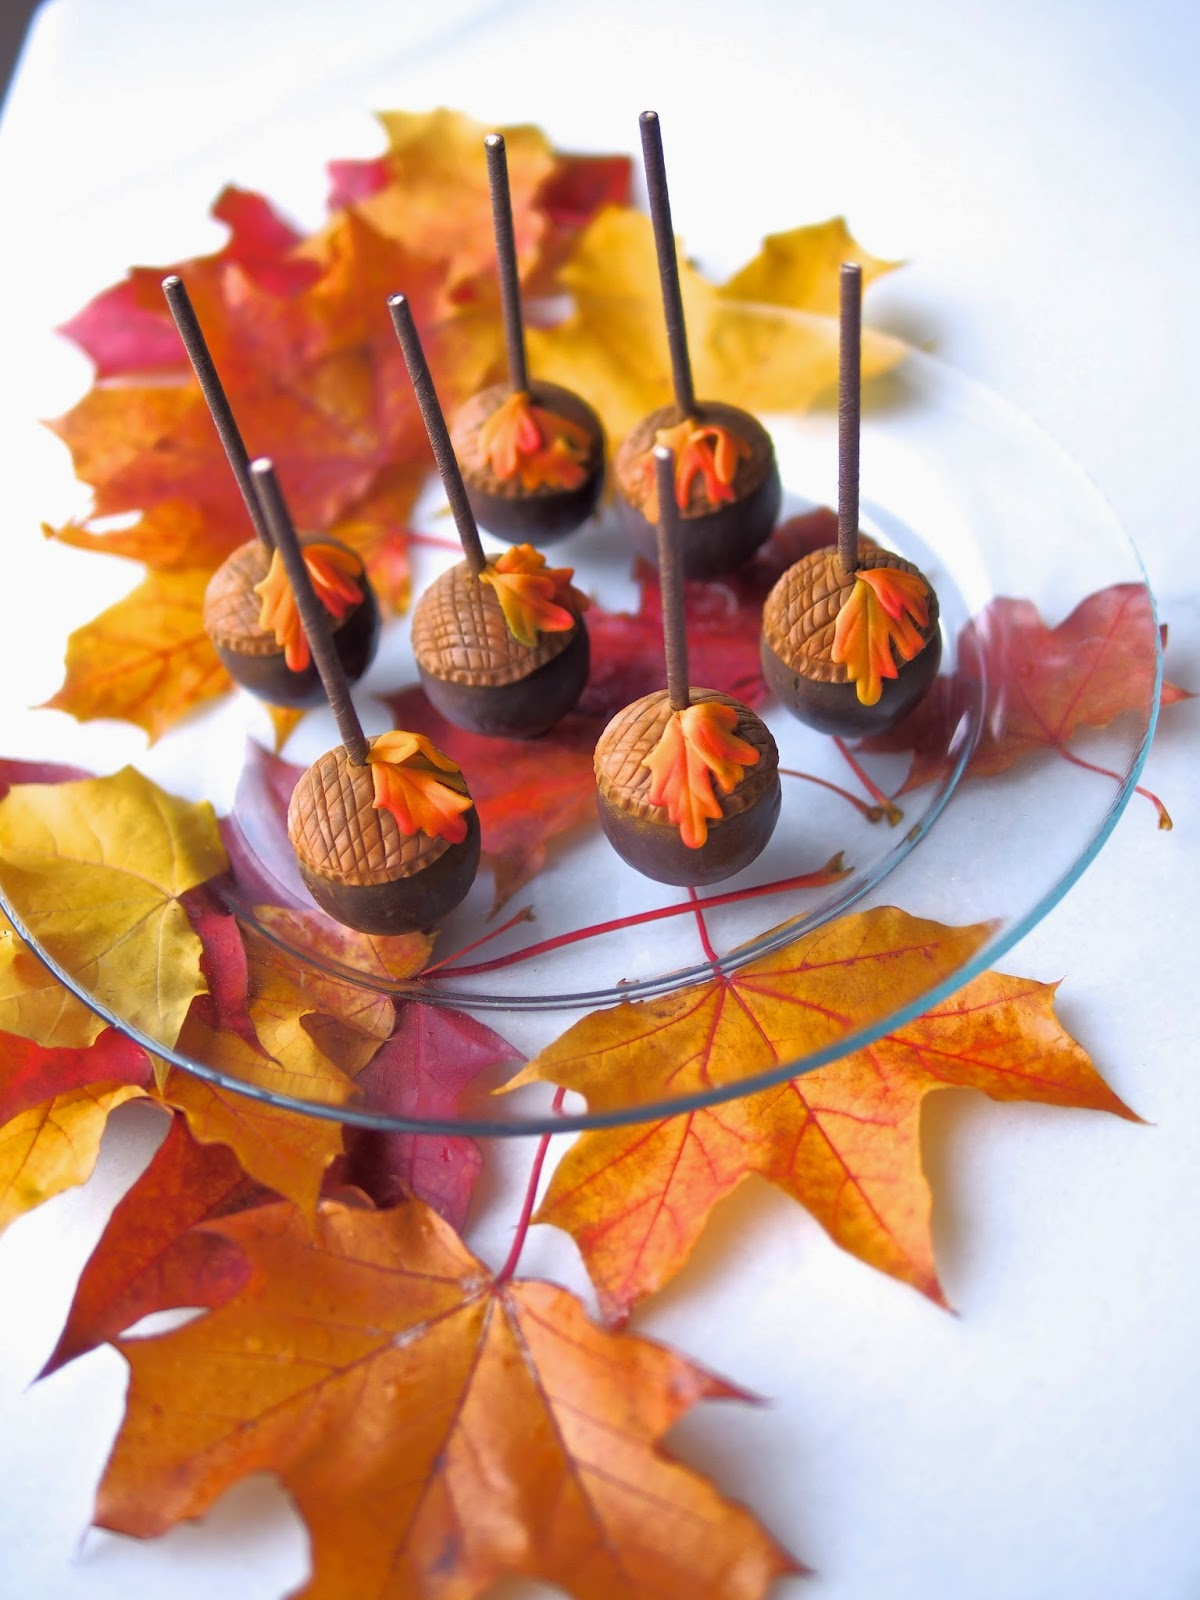 92 best images about Fall cakes on Pinterest | Pumpkin ...